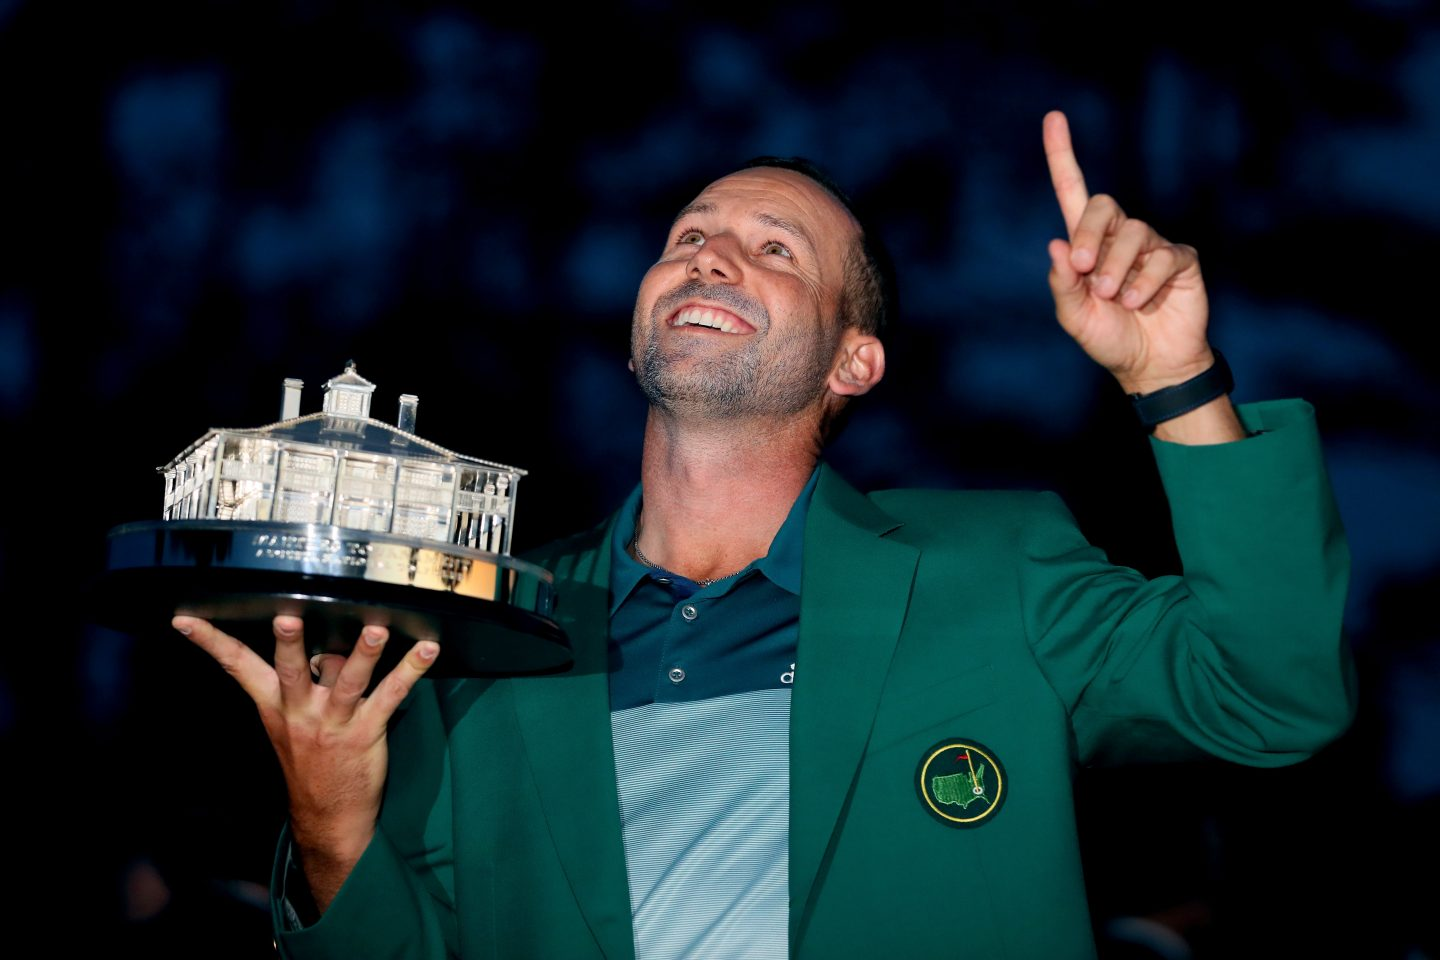 Golfer Sergio Garcia is holding a trophy and pointing one finger to the sky. Gold; Champion; Tournament; Golfer; Athlete; Adidas; Champion; Win; Motivation; Inspiration; Masters